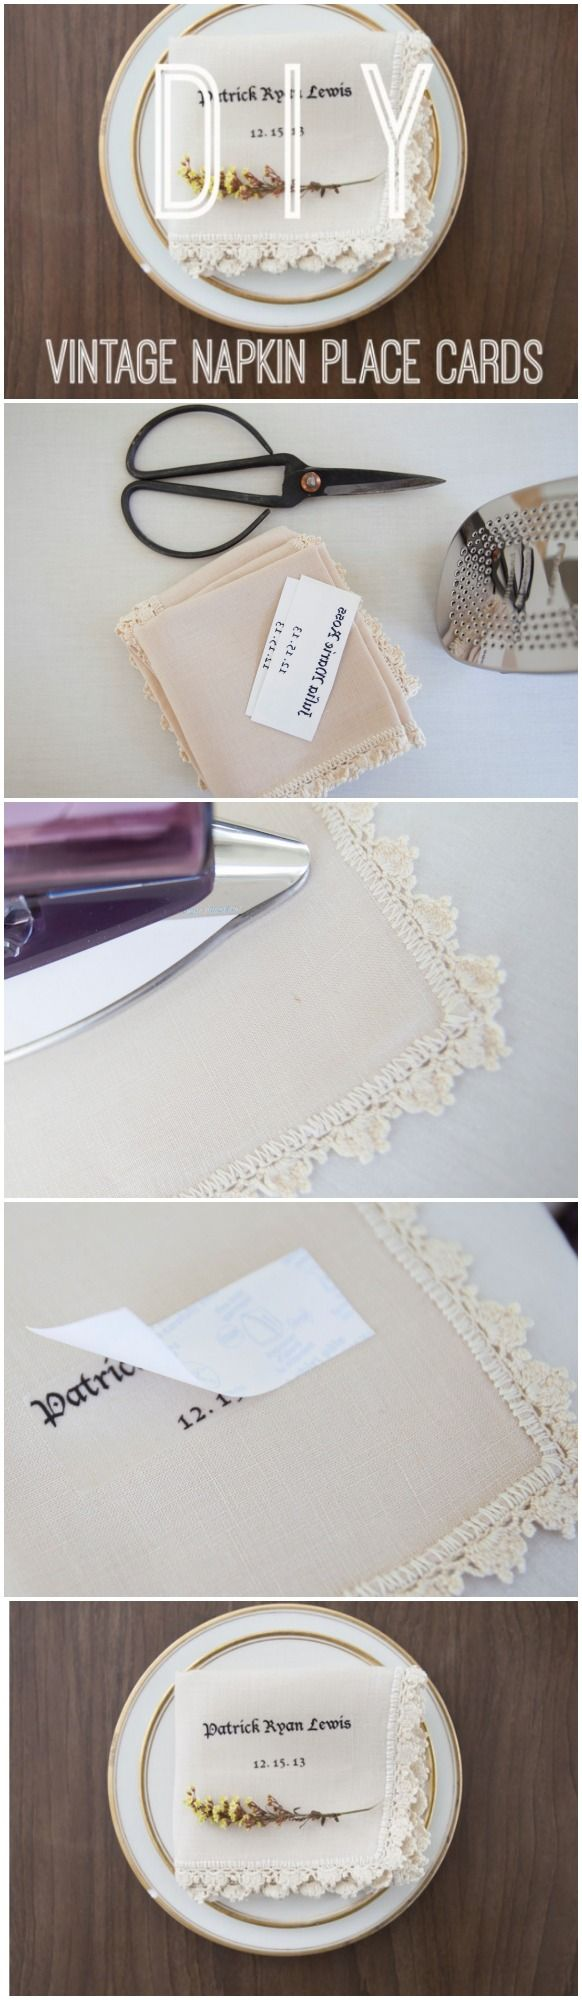 How to Make Personalized Vintage Napkins | Place card, Wedding and ...